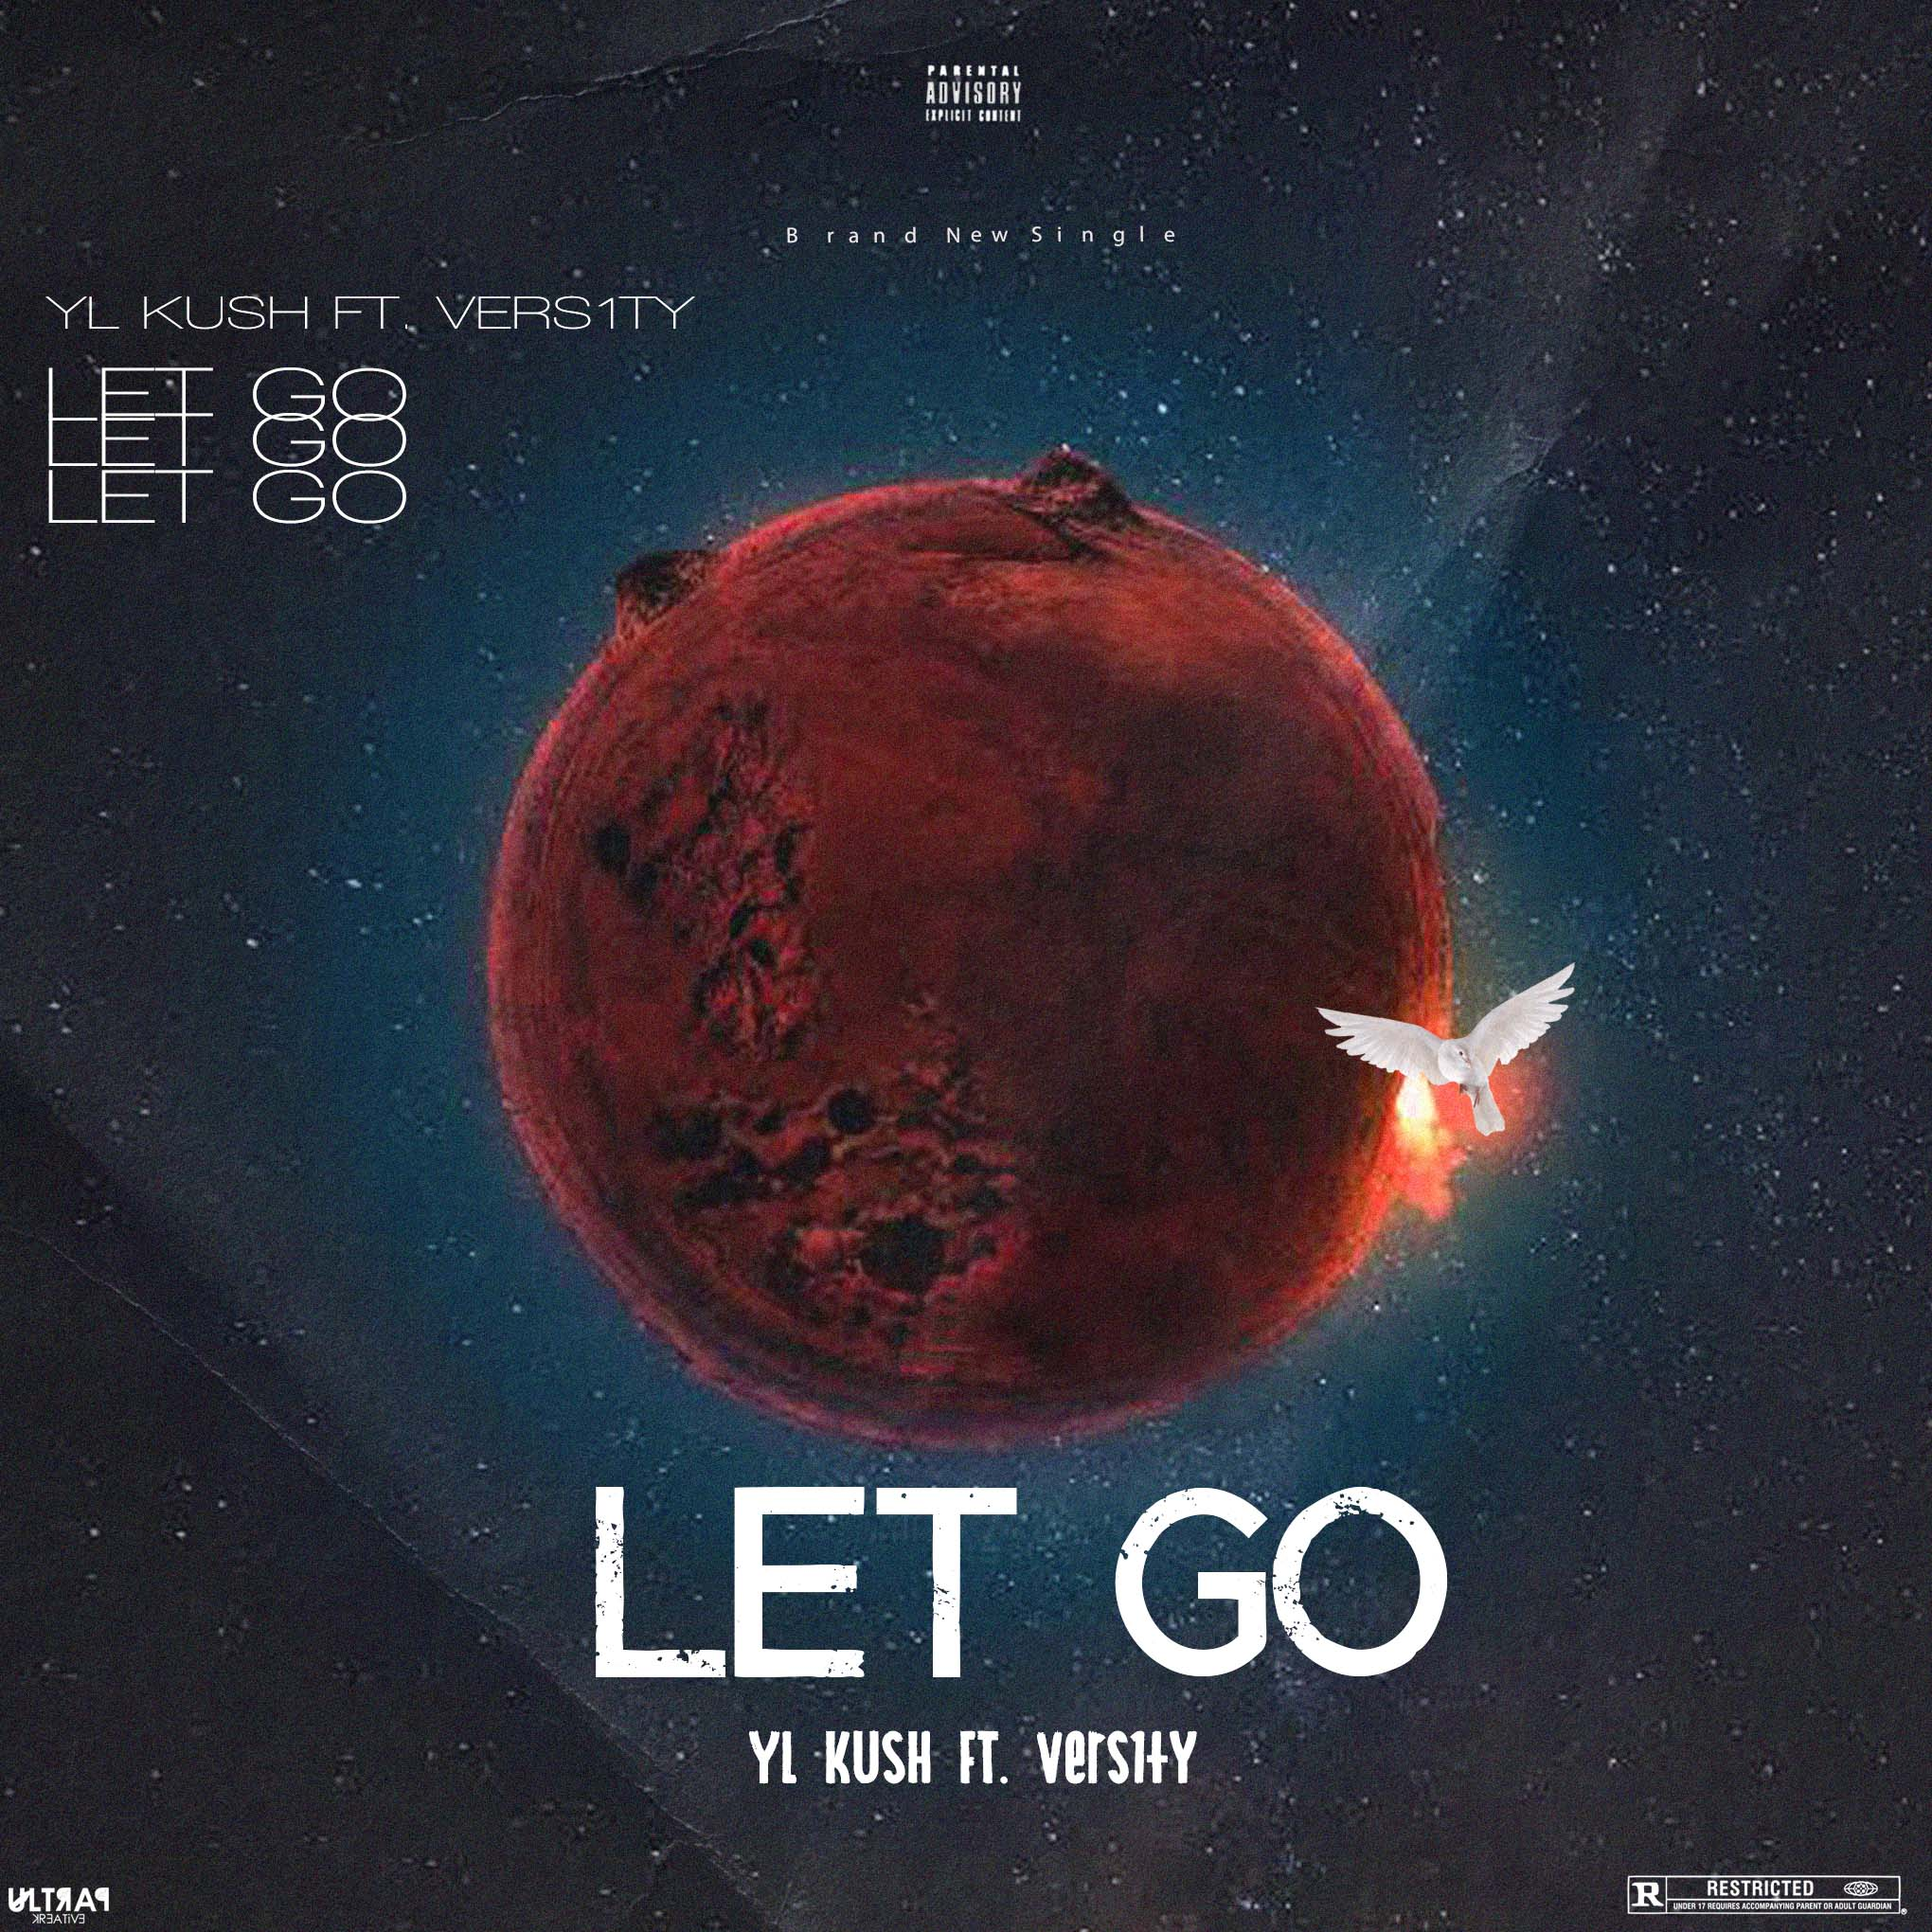 YL Kush - Let Go Ft. Vers1ty